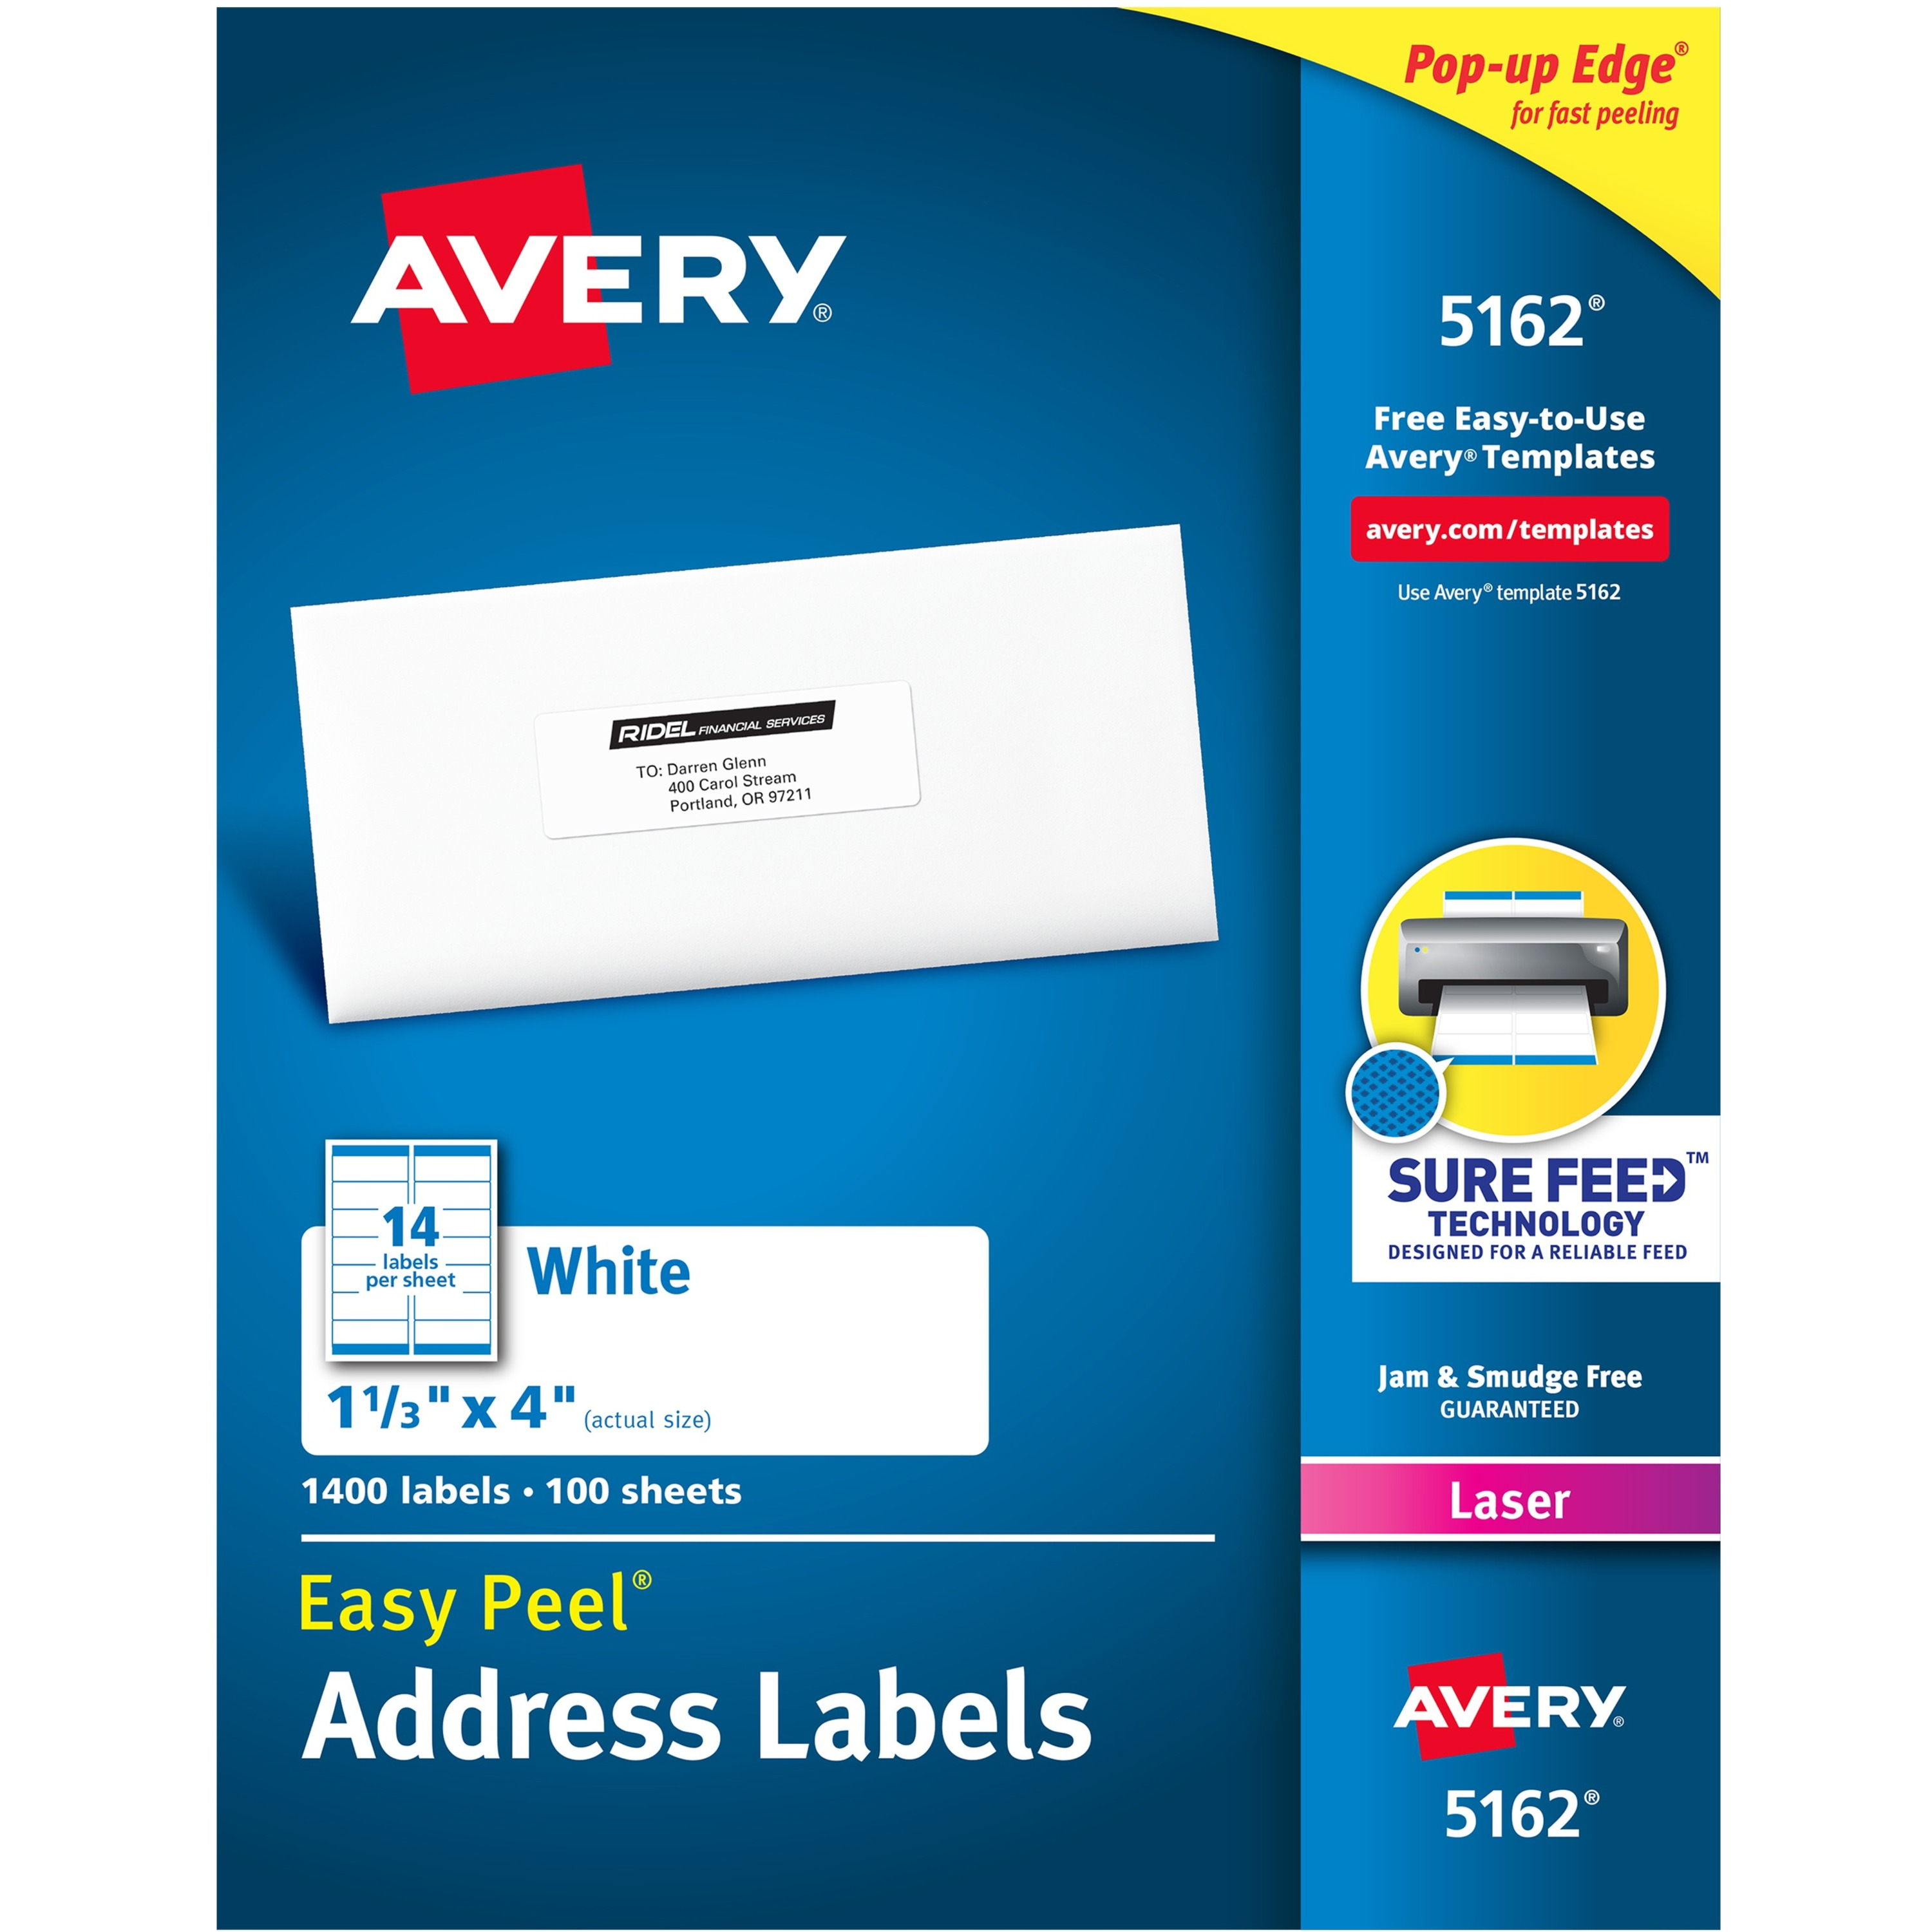 avery easy peel address labels with sure feed technology kopy